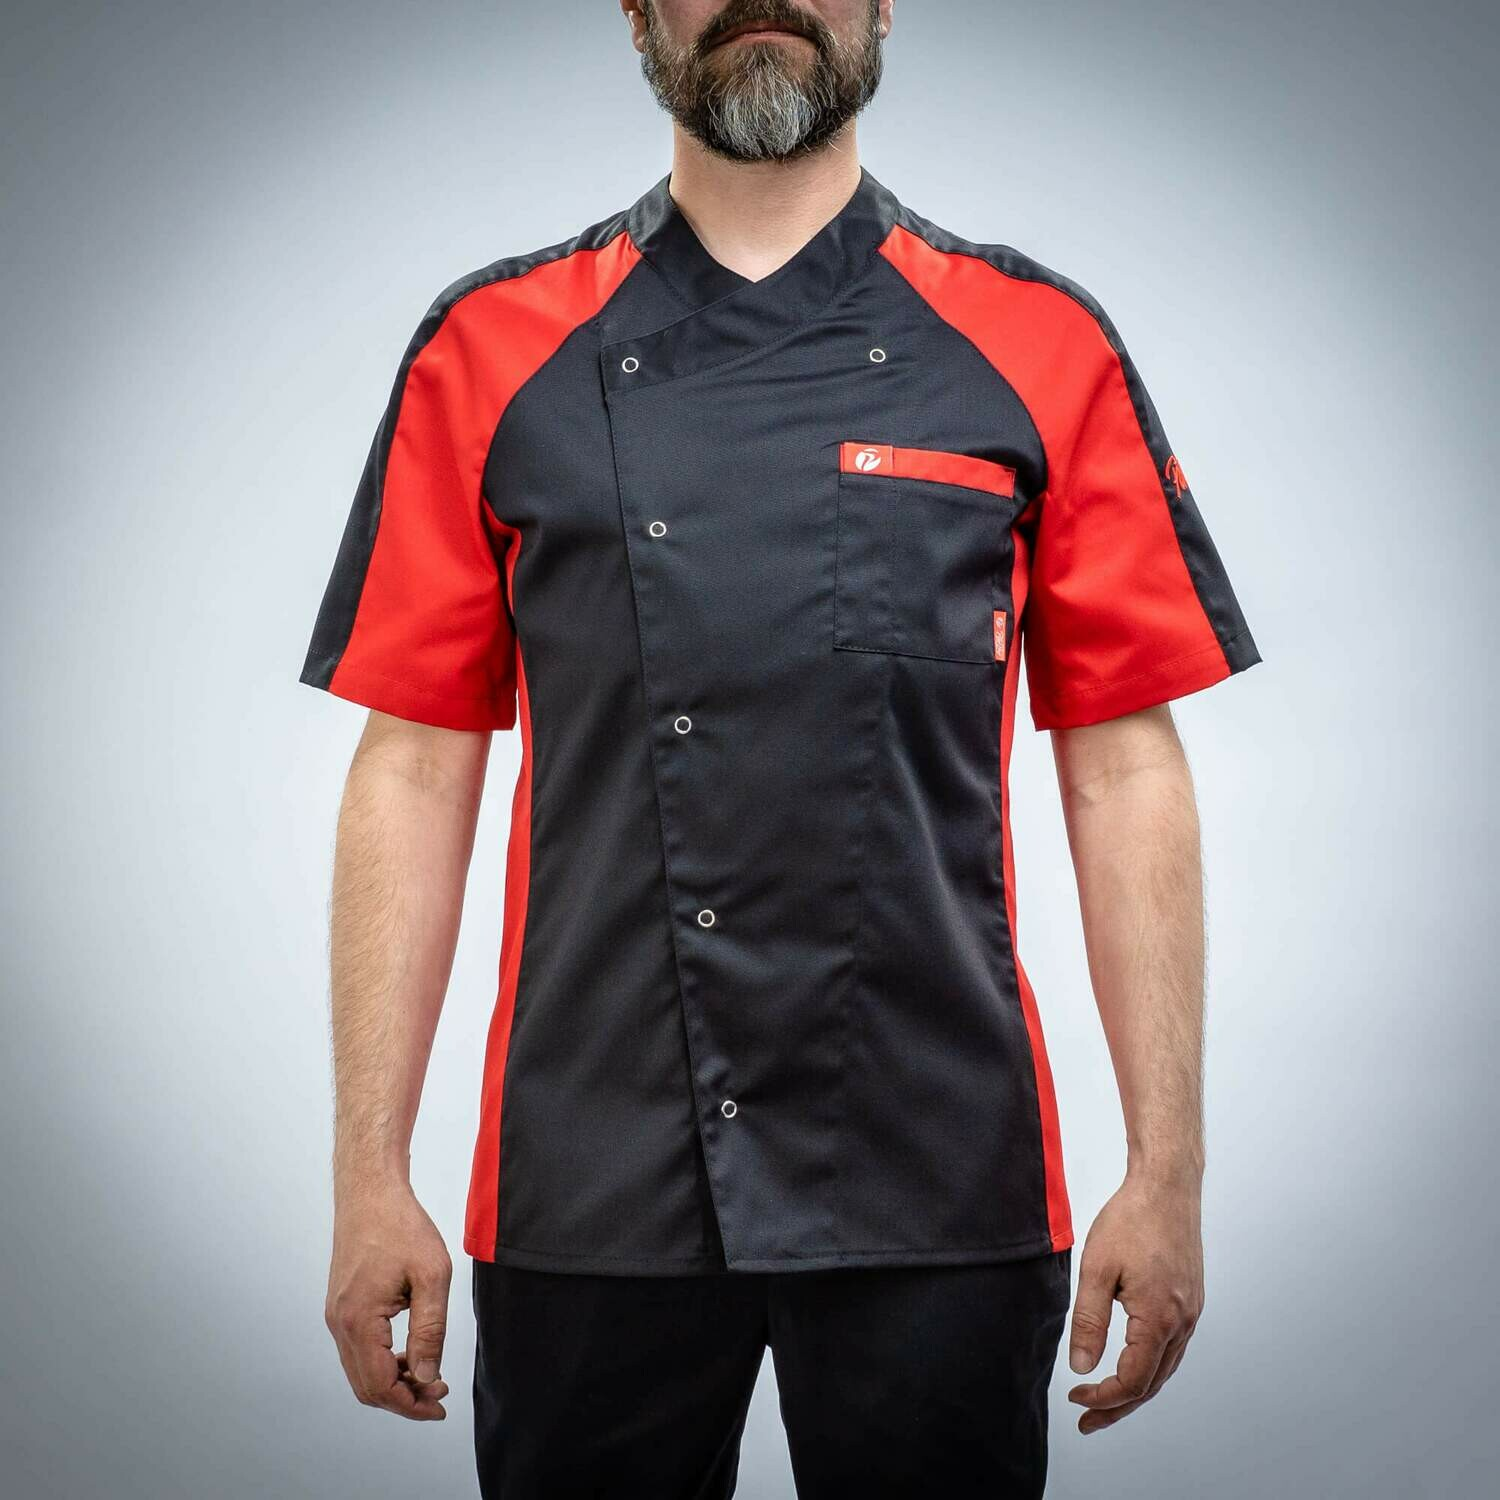 109BR - CHEF'S JACKET